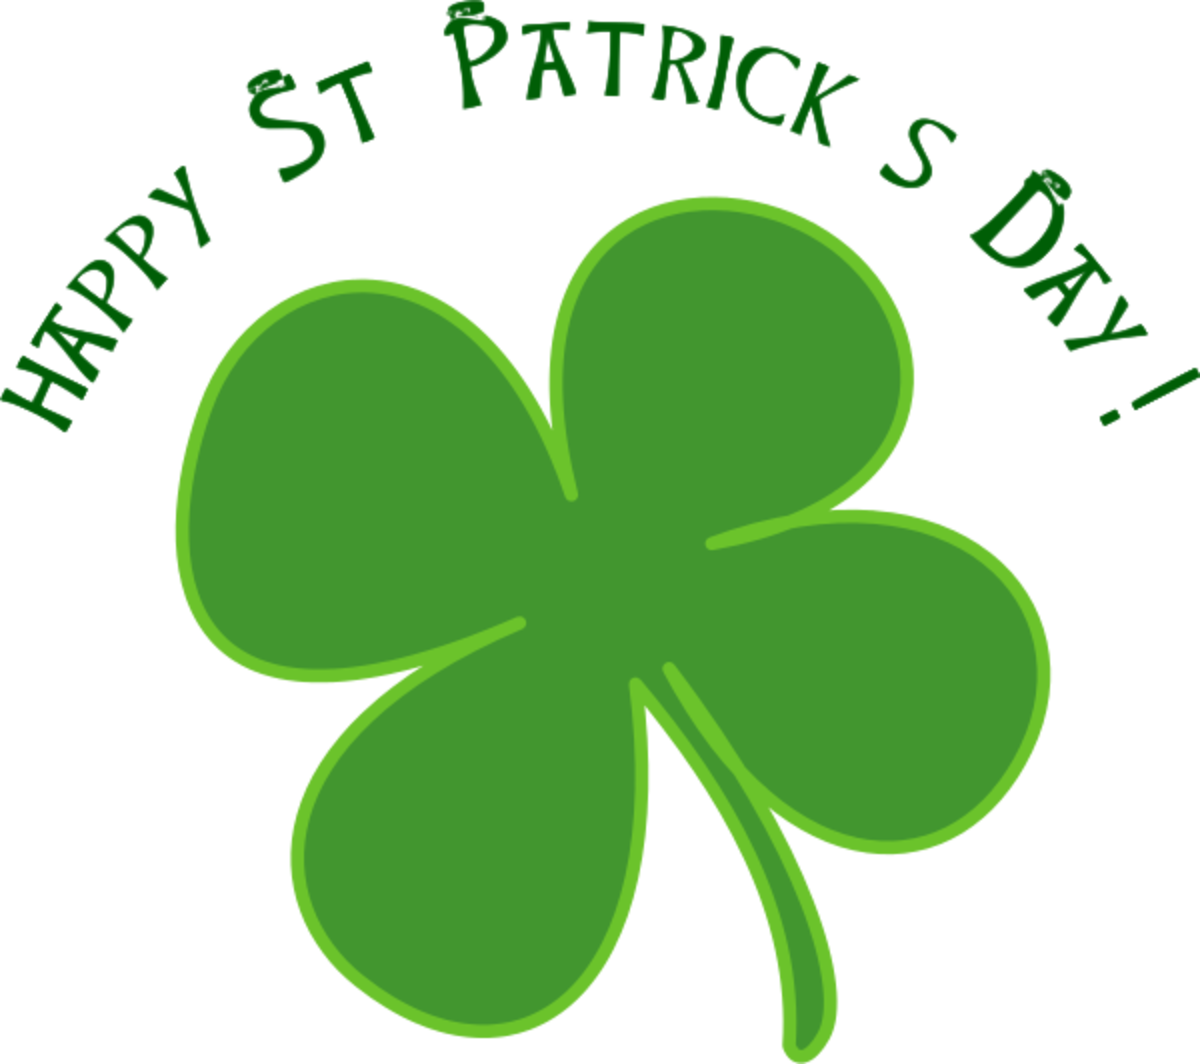 'Happy St. Patrick's Day' with Four-Leaf Clover